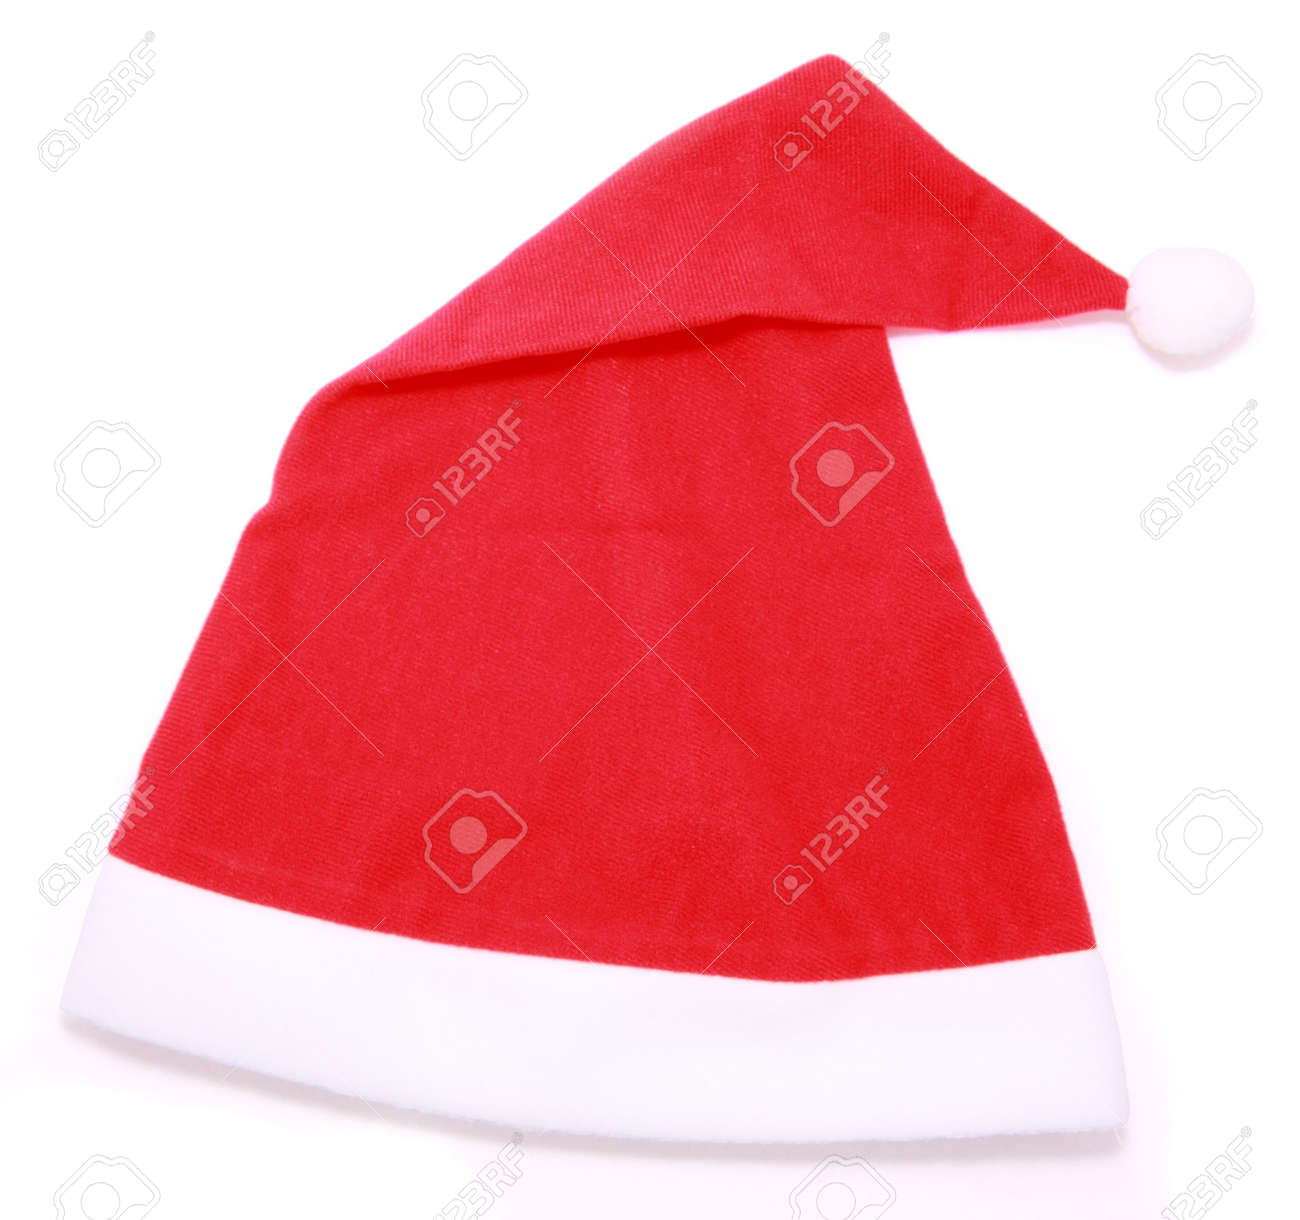 b6291a5e146 Santa hat isolated on white background Stock Photo - 3908180